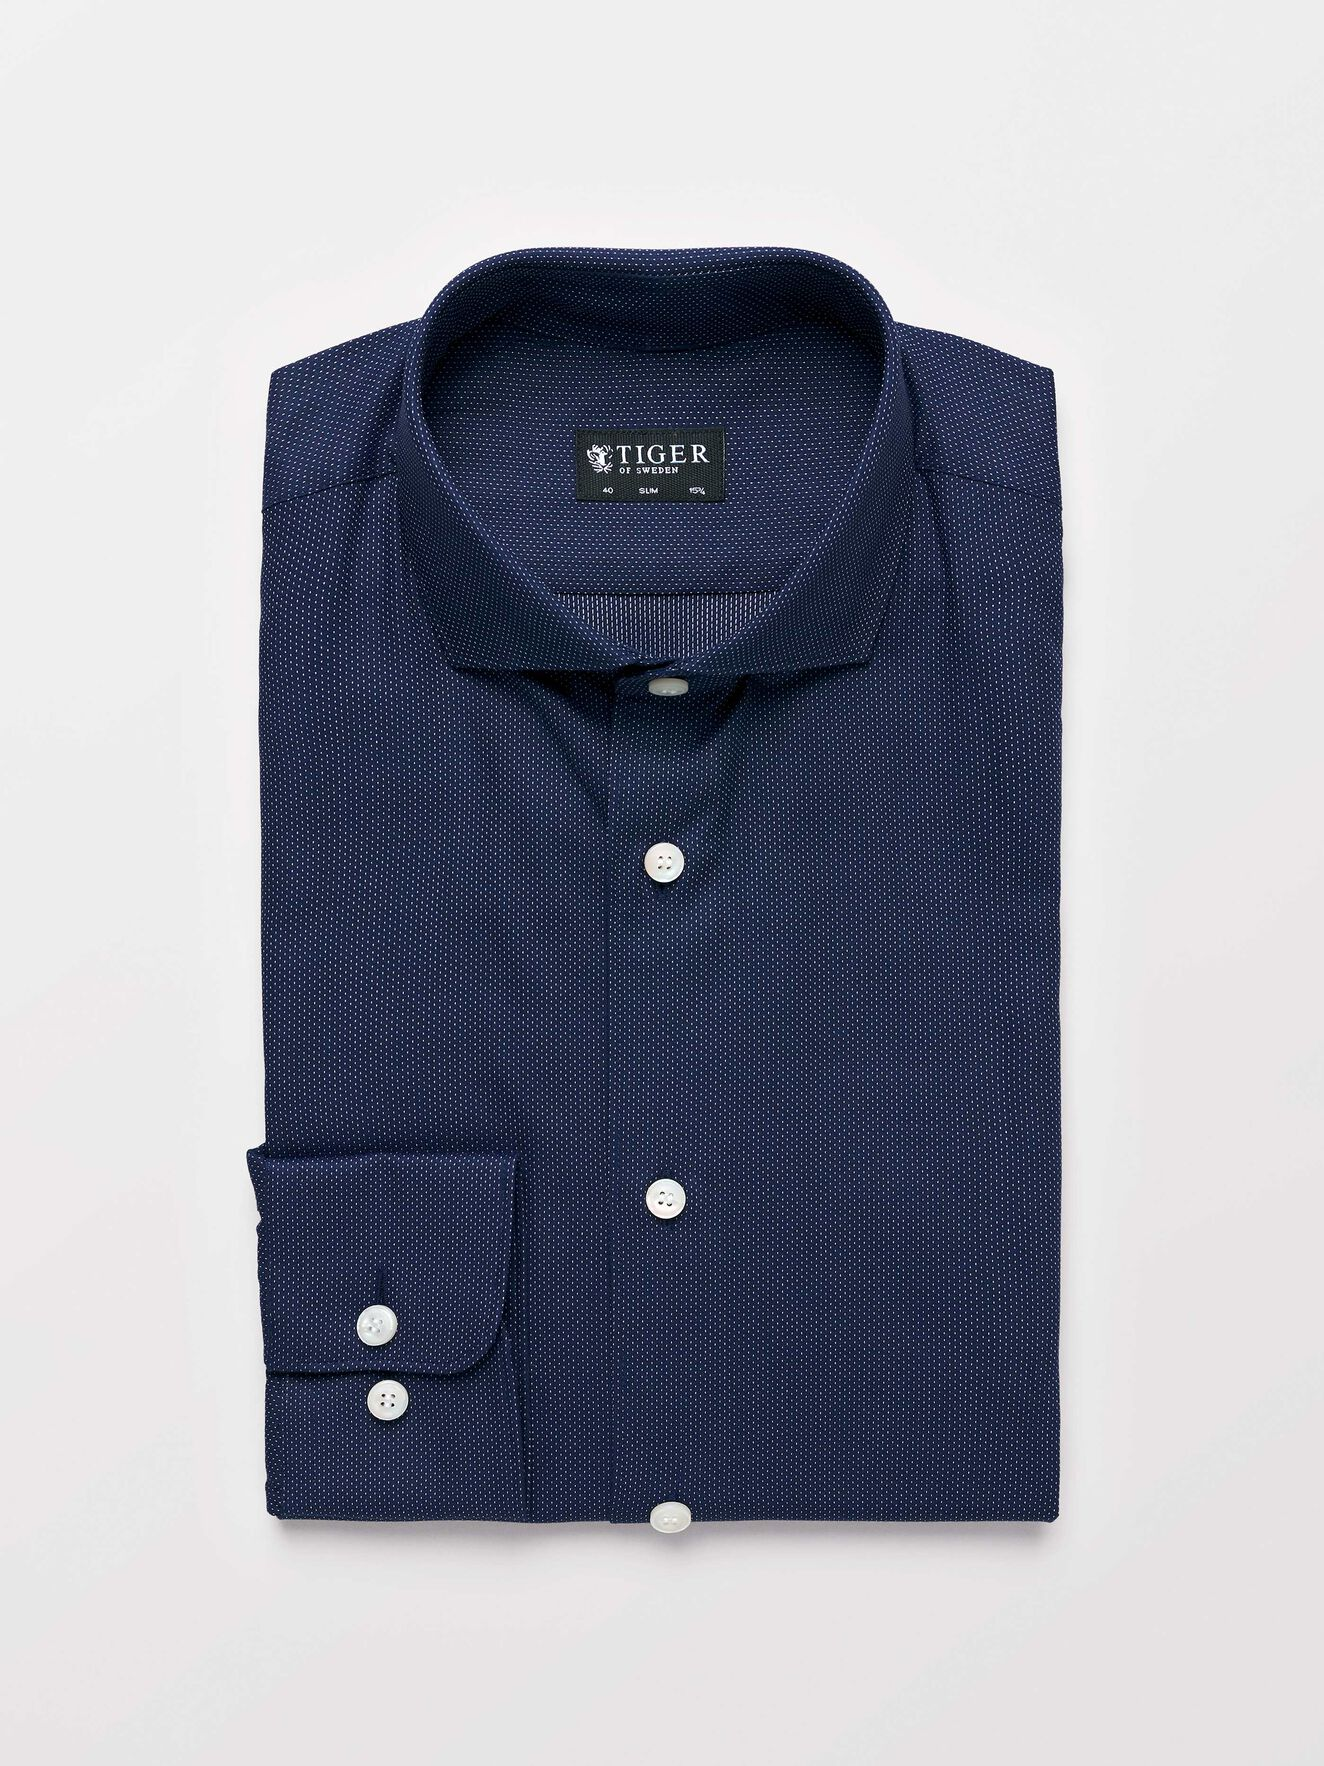 Farrell 5 Shirt in Royal Blue from Tiger of Sweden